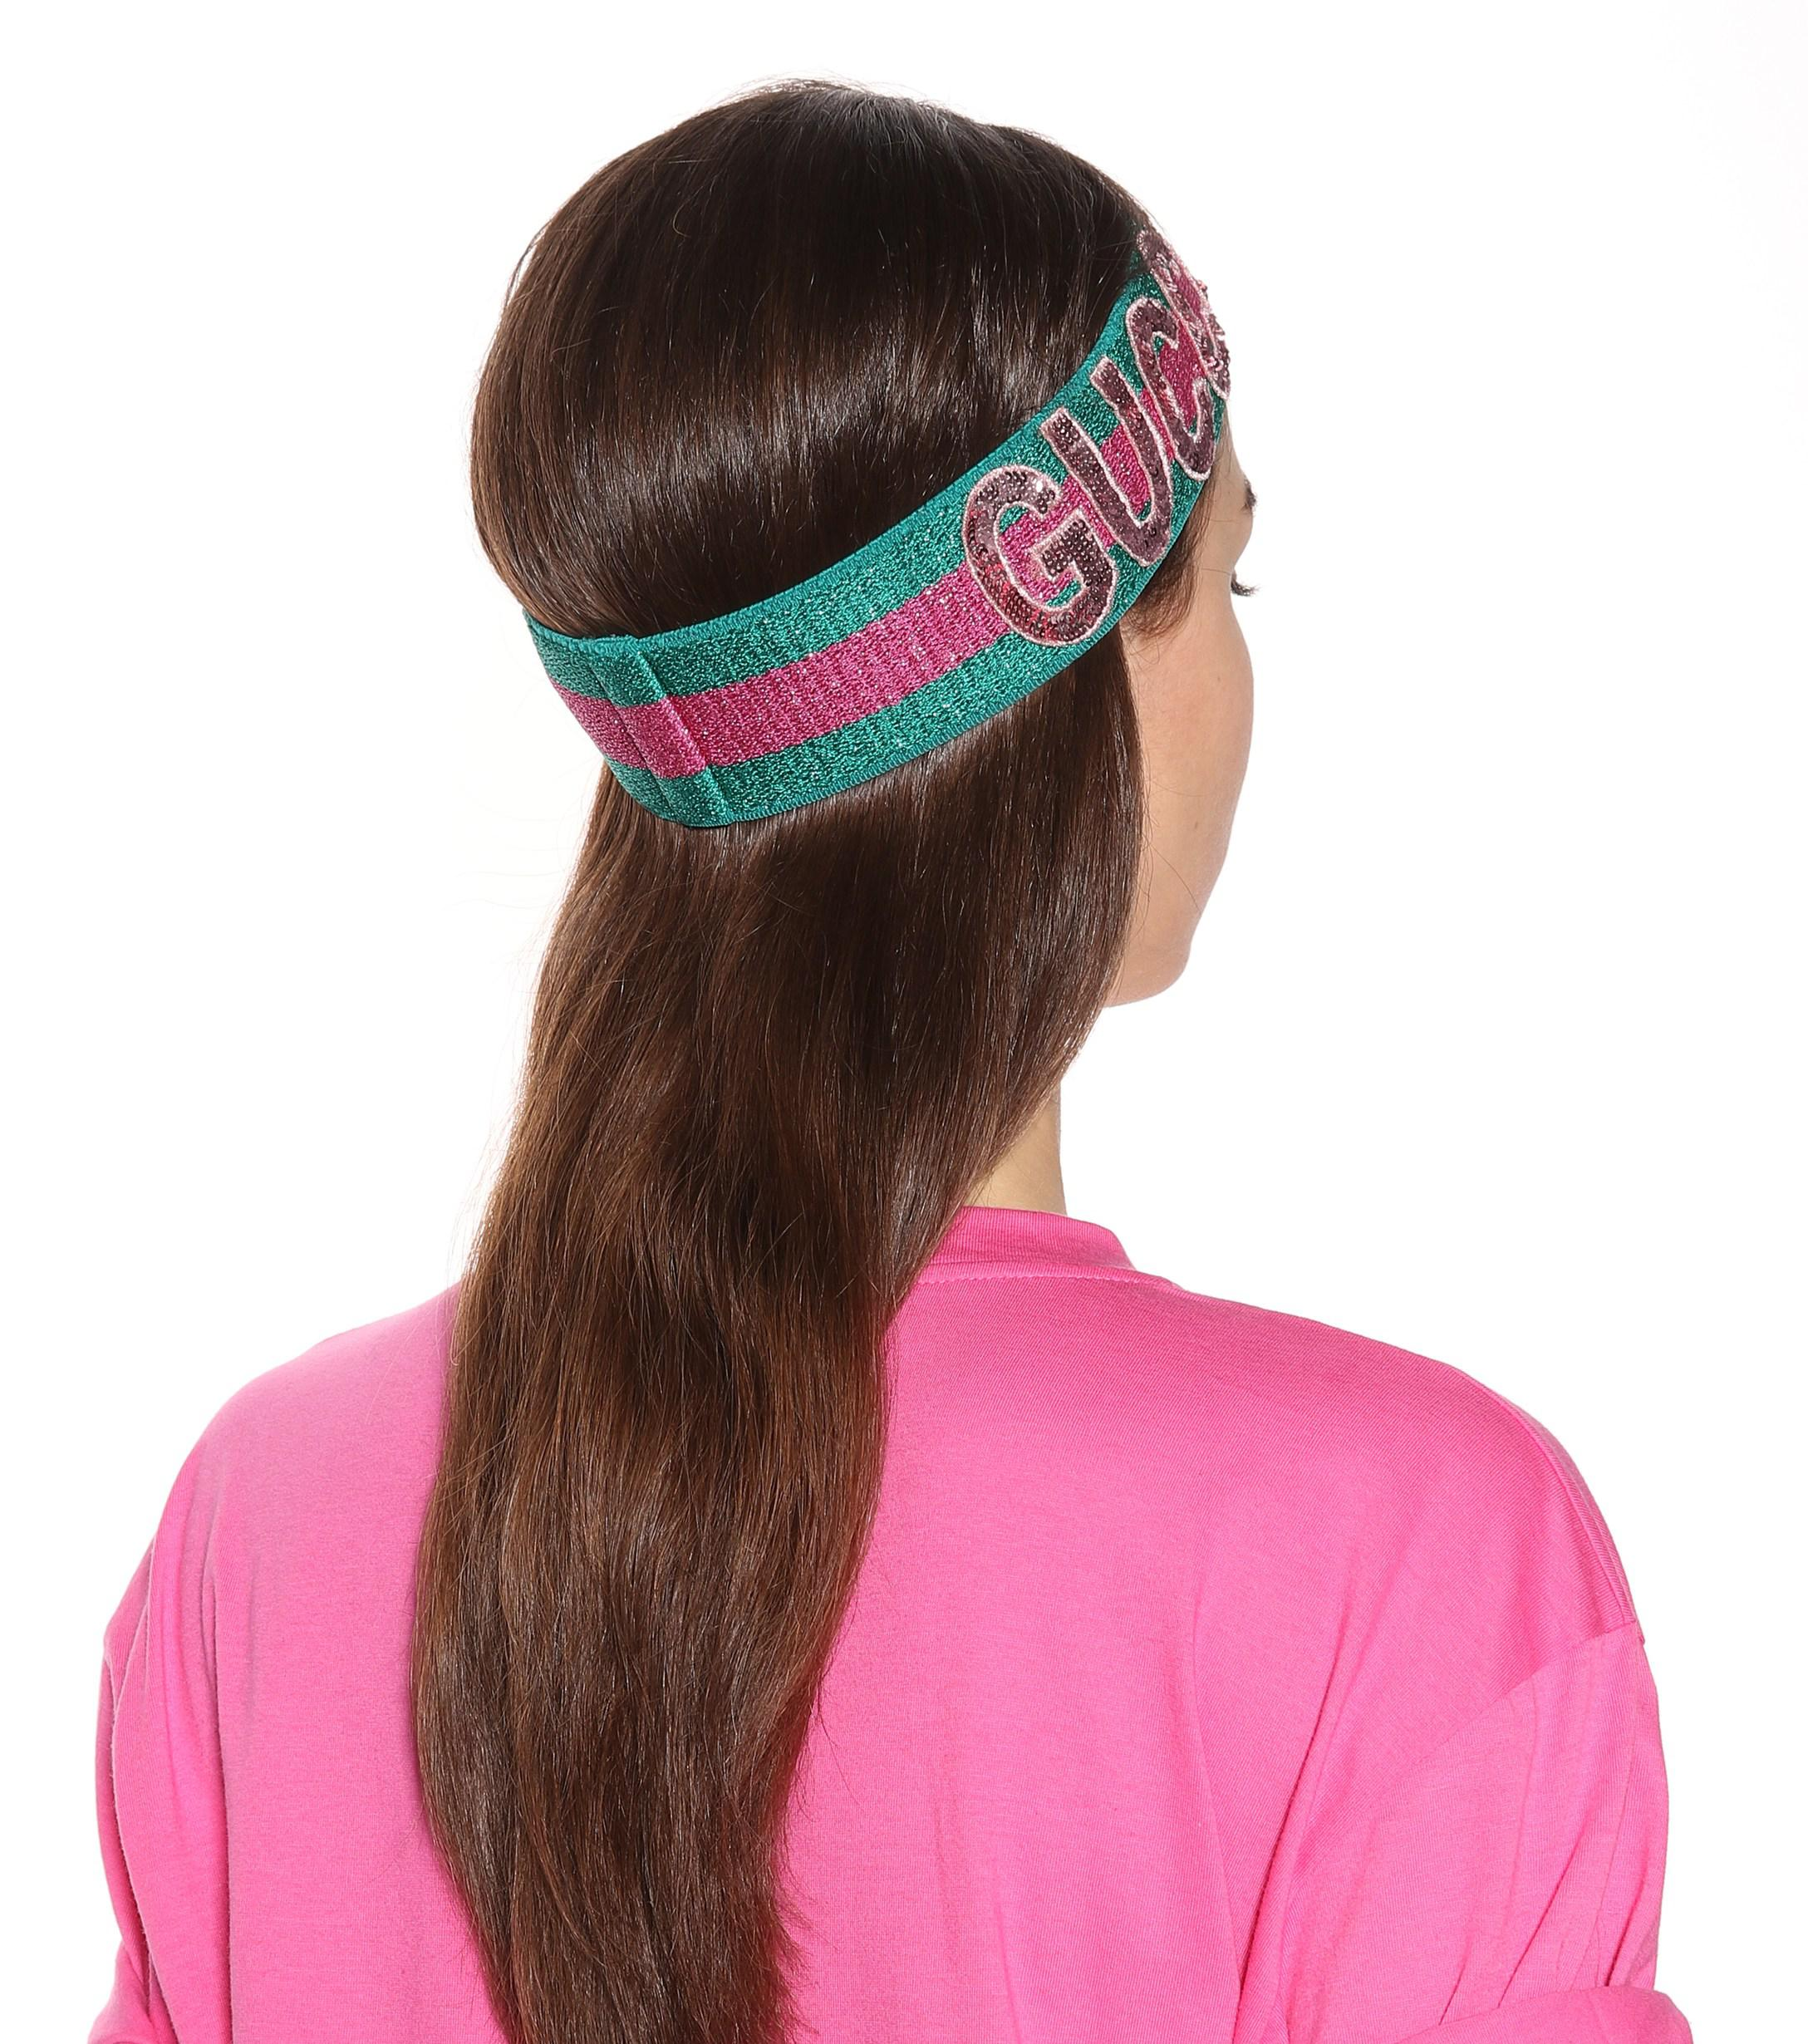 64d13eafafd Lyst gucci sequinned headband in pink reversible headband gucci macrame  pattern jpg 2176x2460 Reversible headband gucci